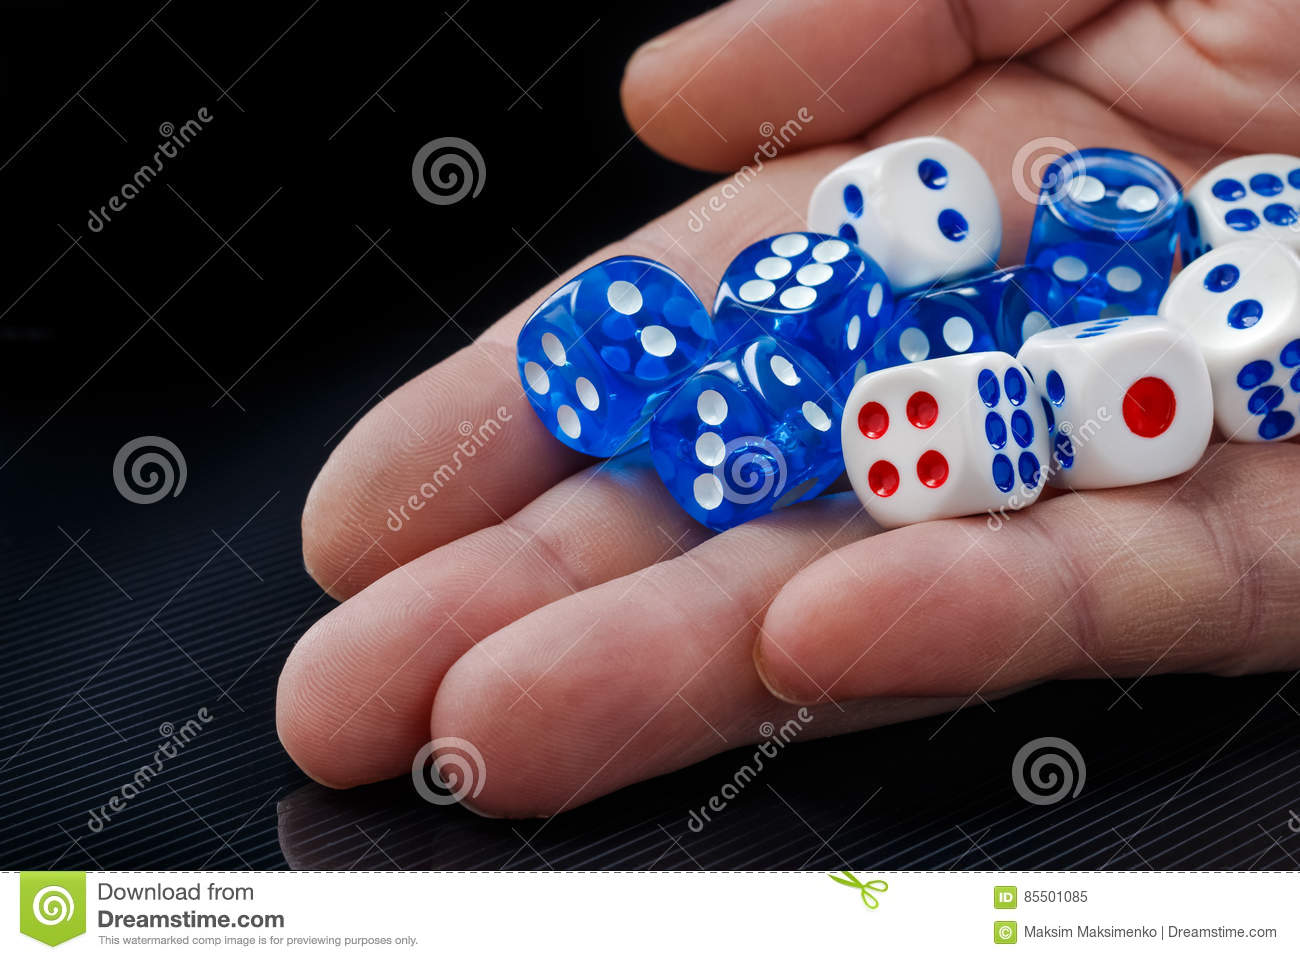 The male hand throwing dices on dark background